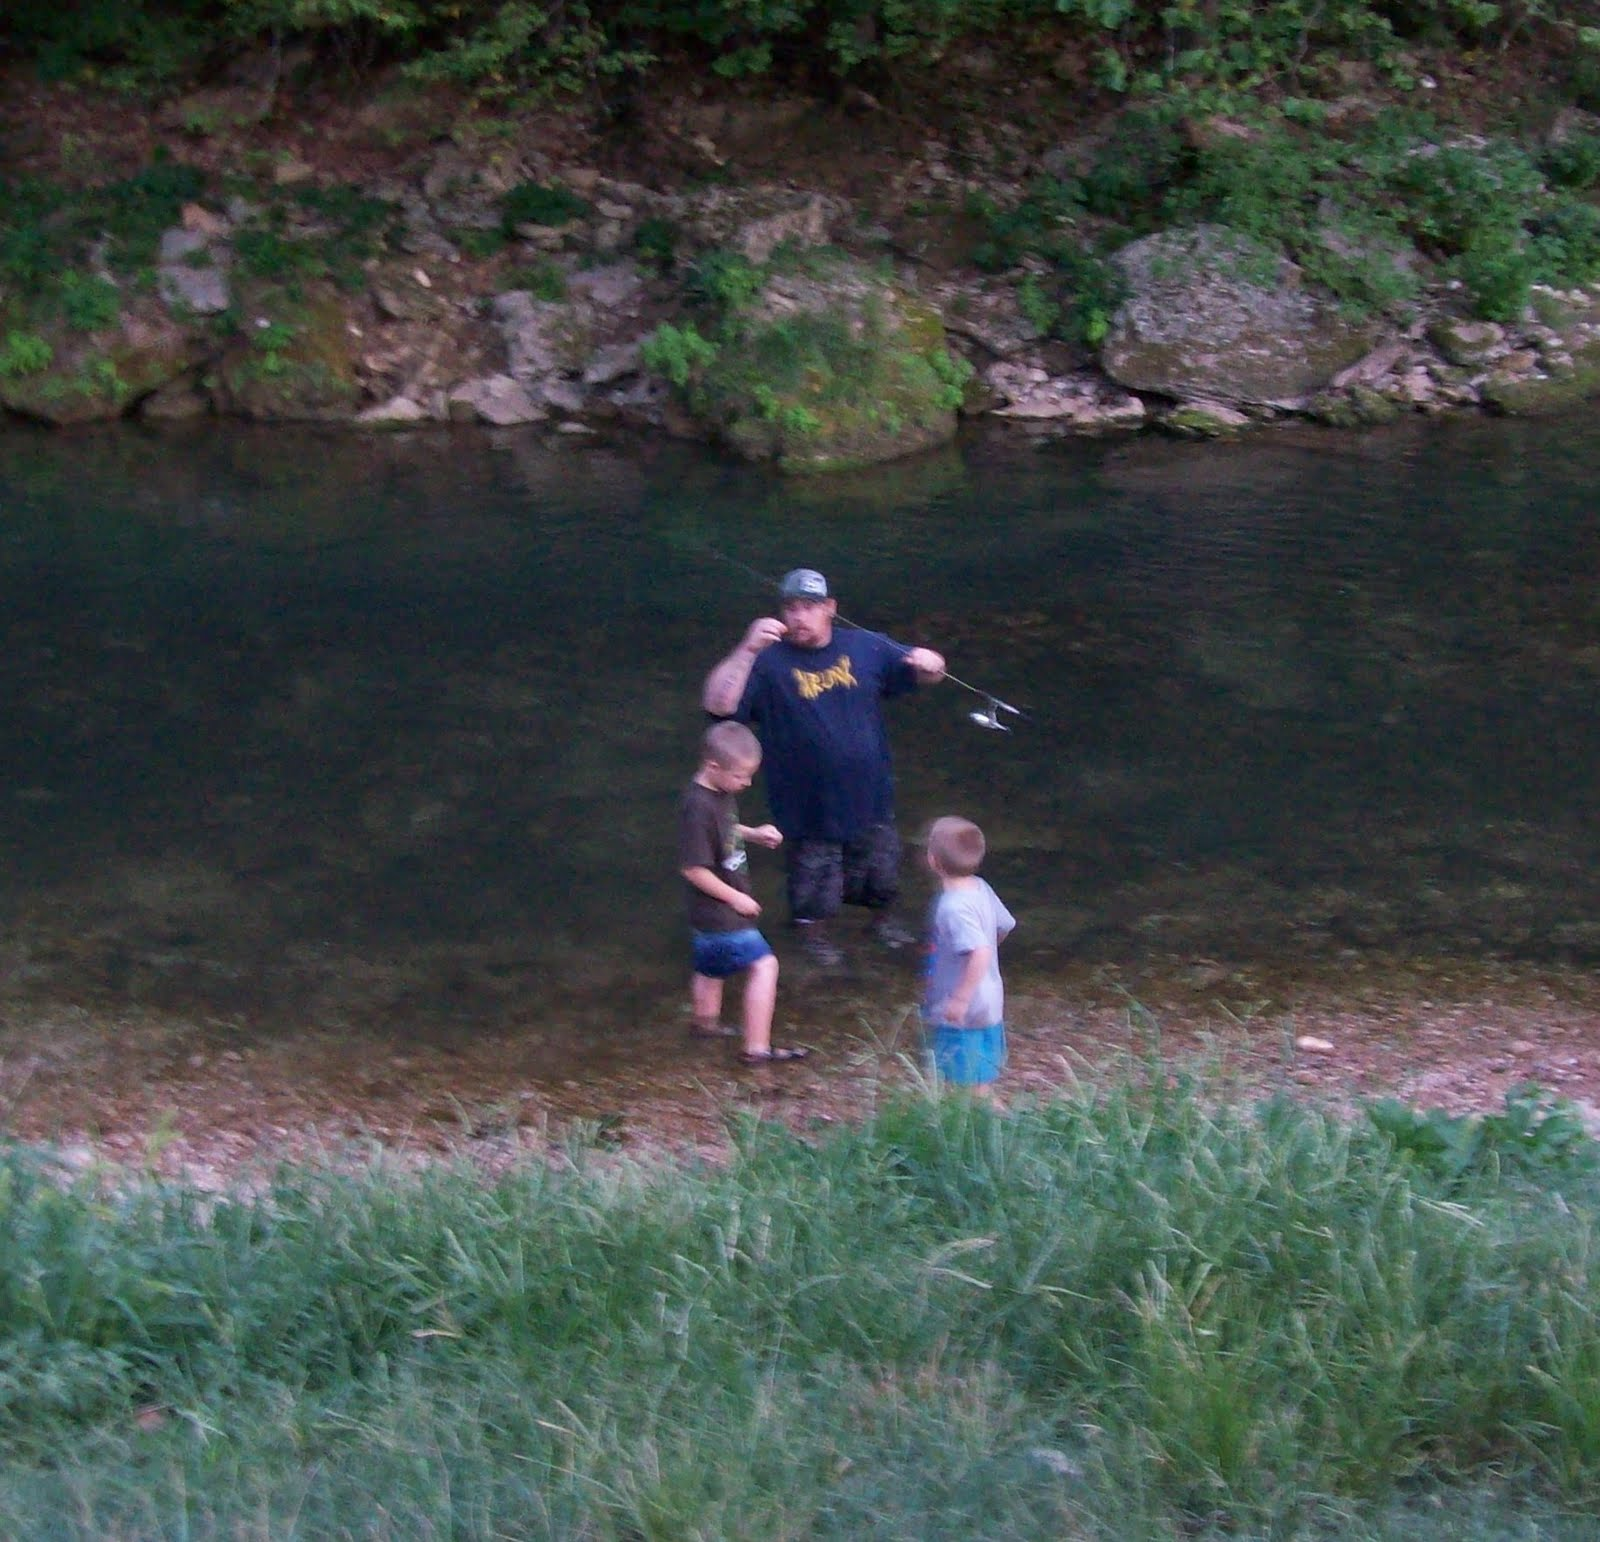 Magical madness roaring river state park for Roaring river fishing hours